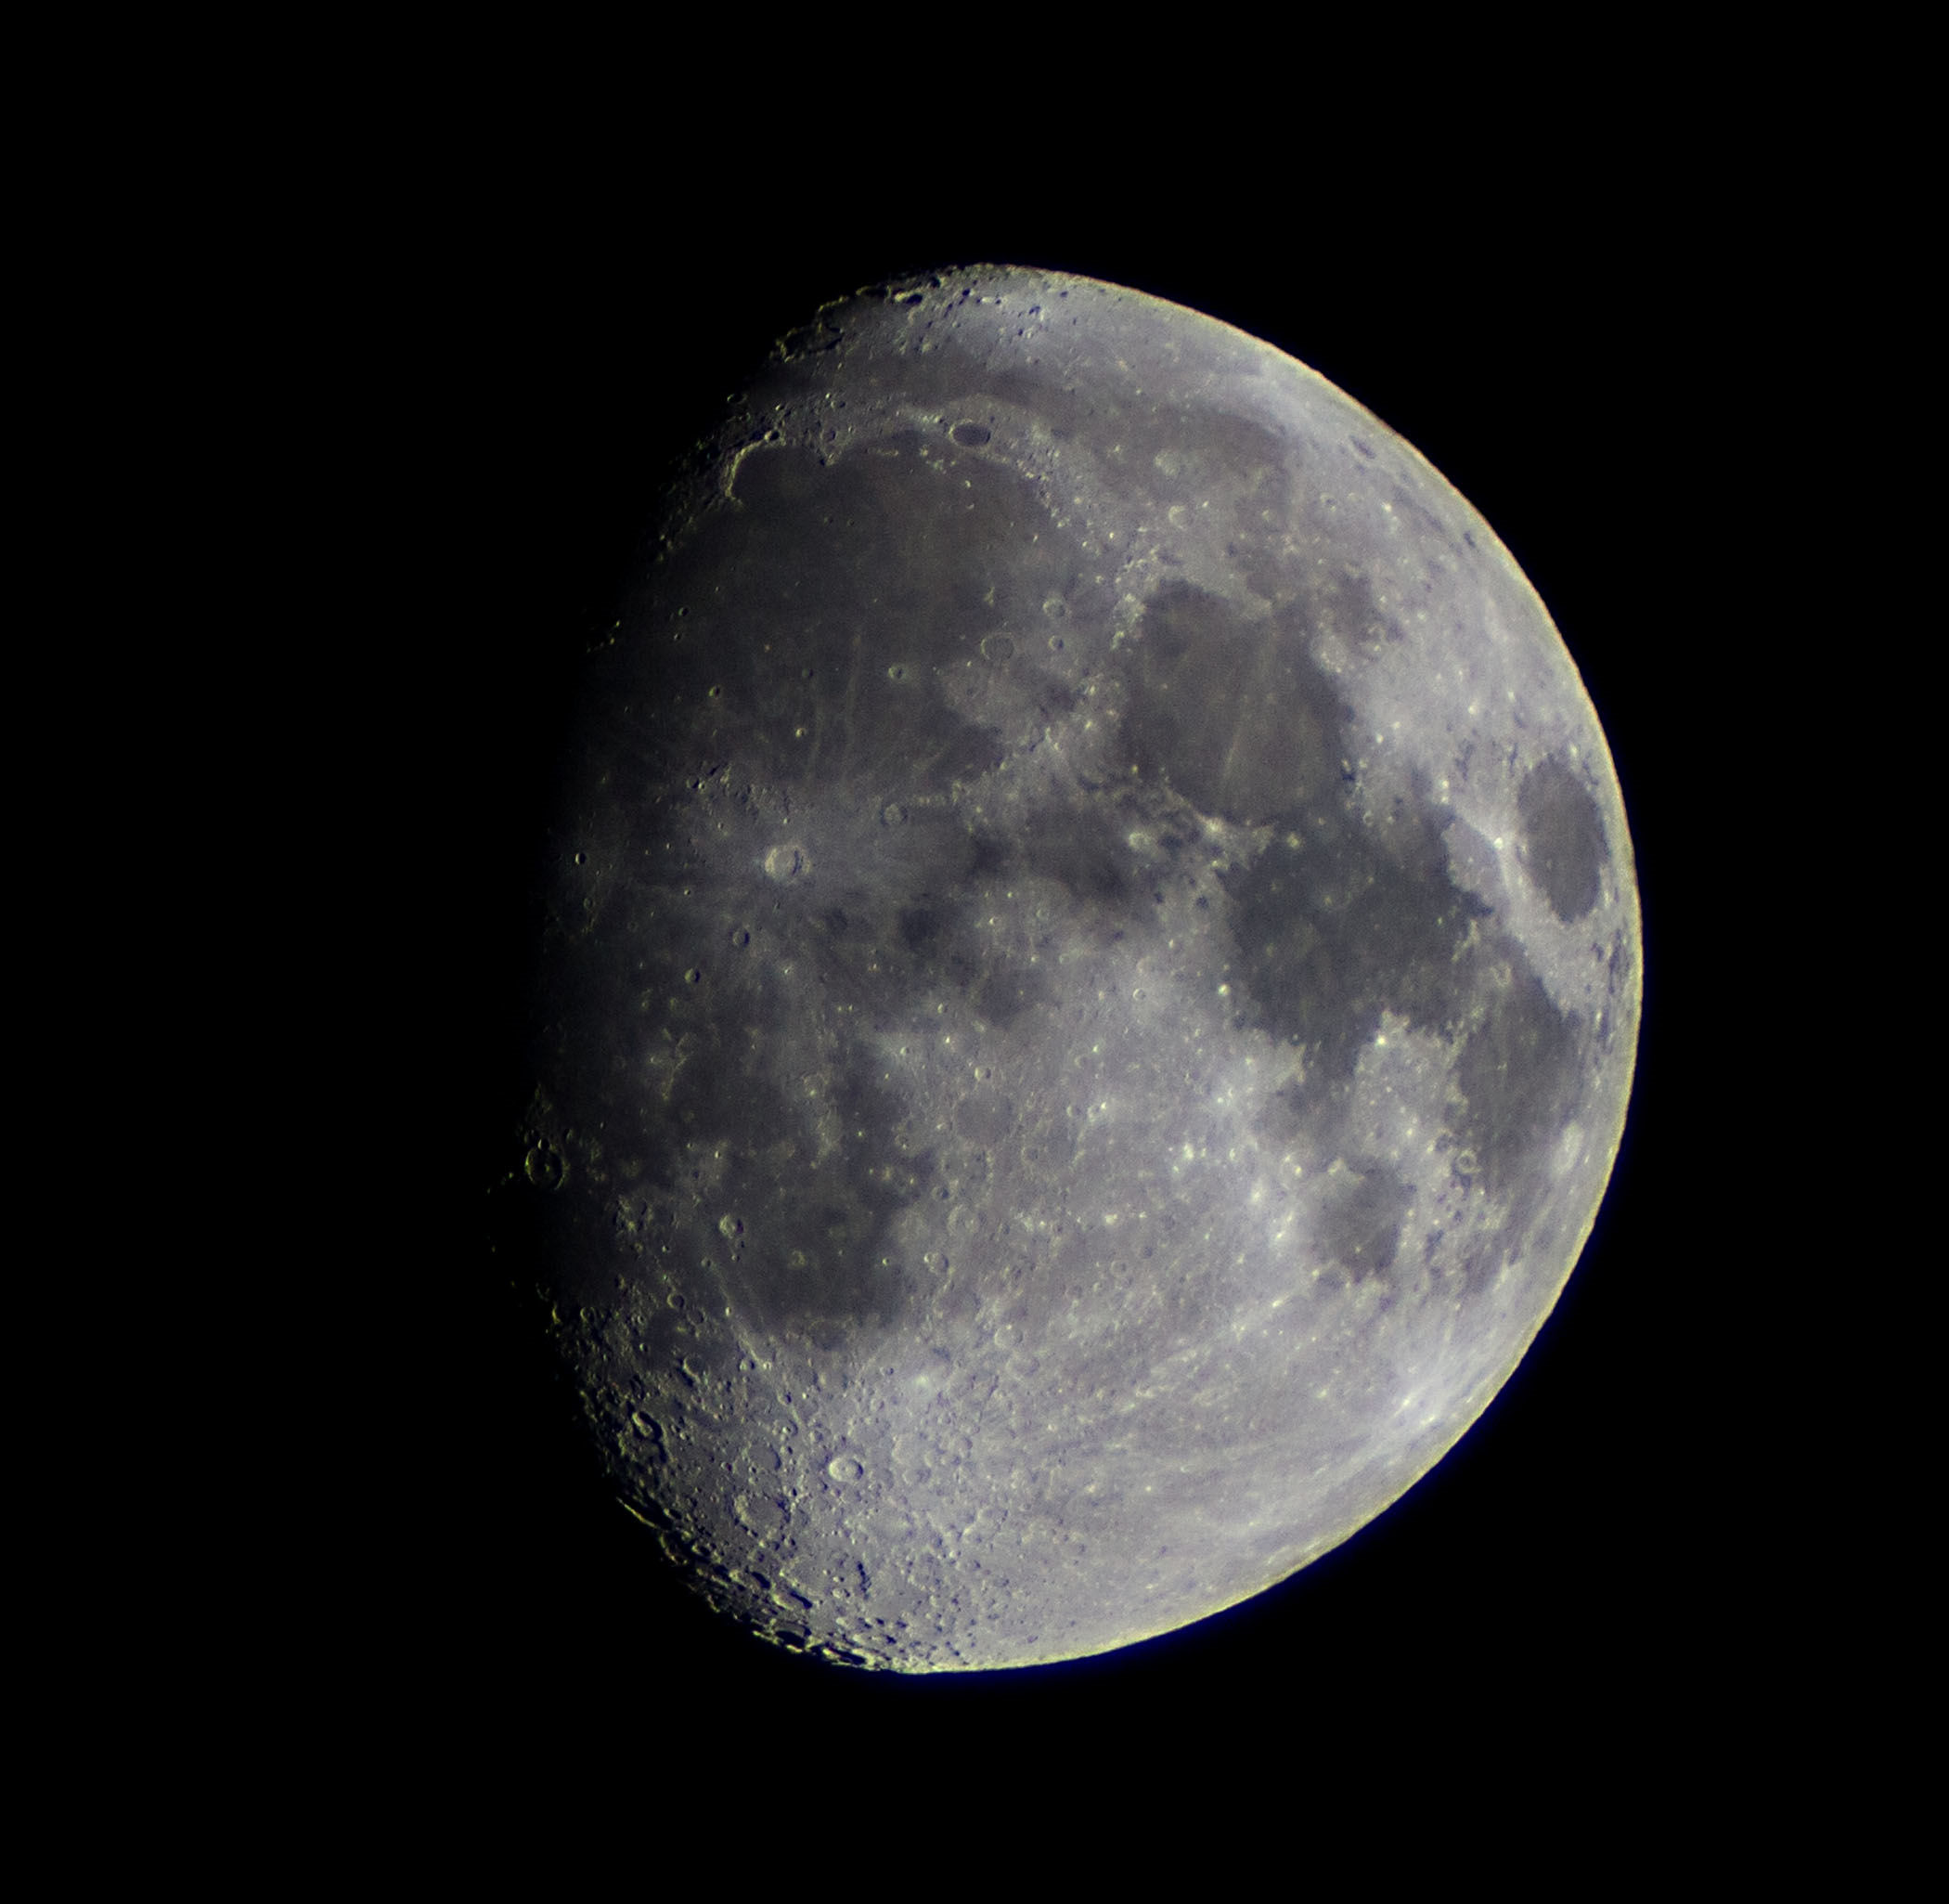 The Moon by Ken Kennedy. 10.11.2016  19.24. Canon EOS 100D 1/100 second.  ISO-200. Nice detail in this moon picture by Ken